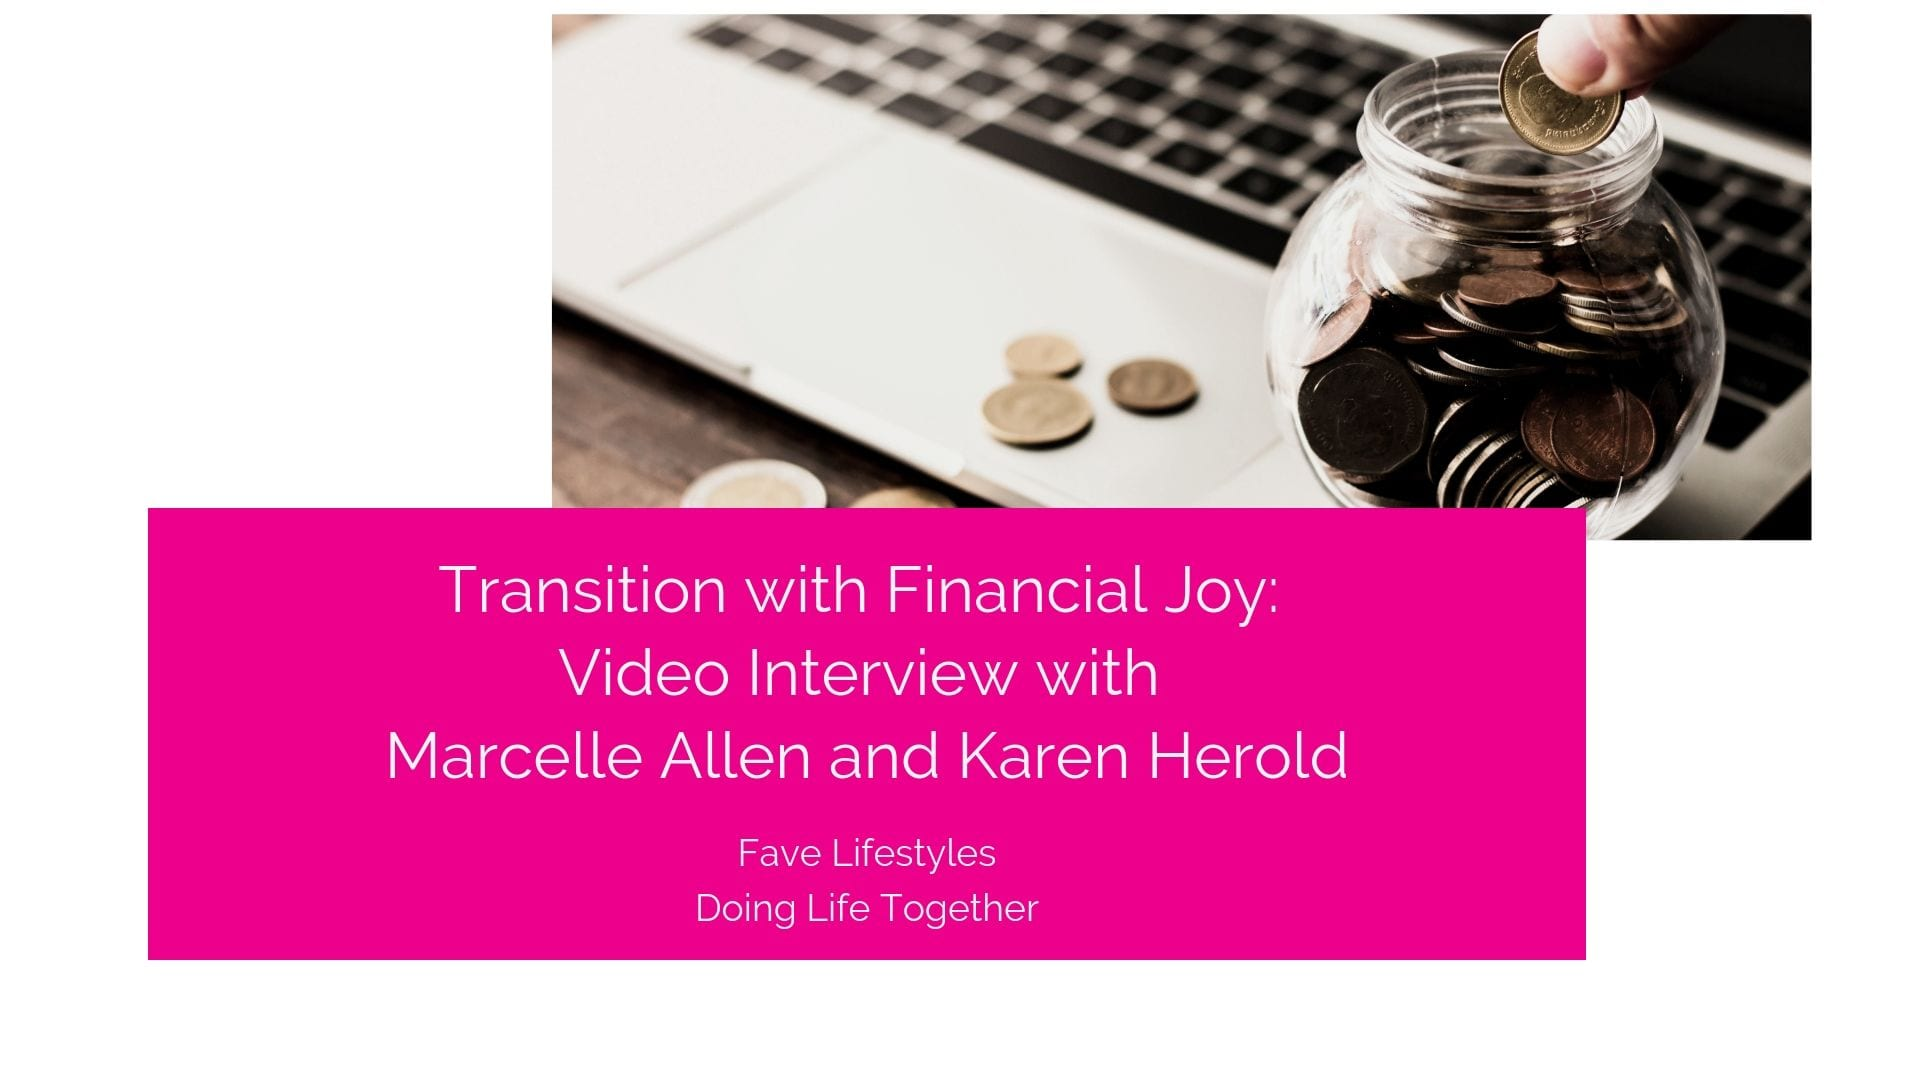 Transition with Financial Joy